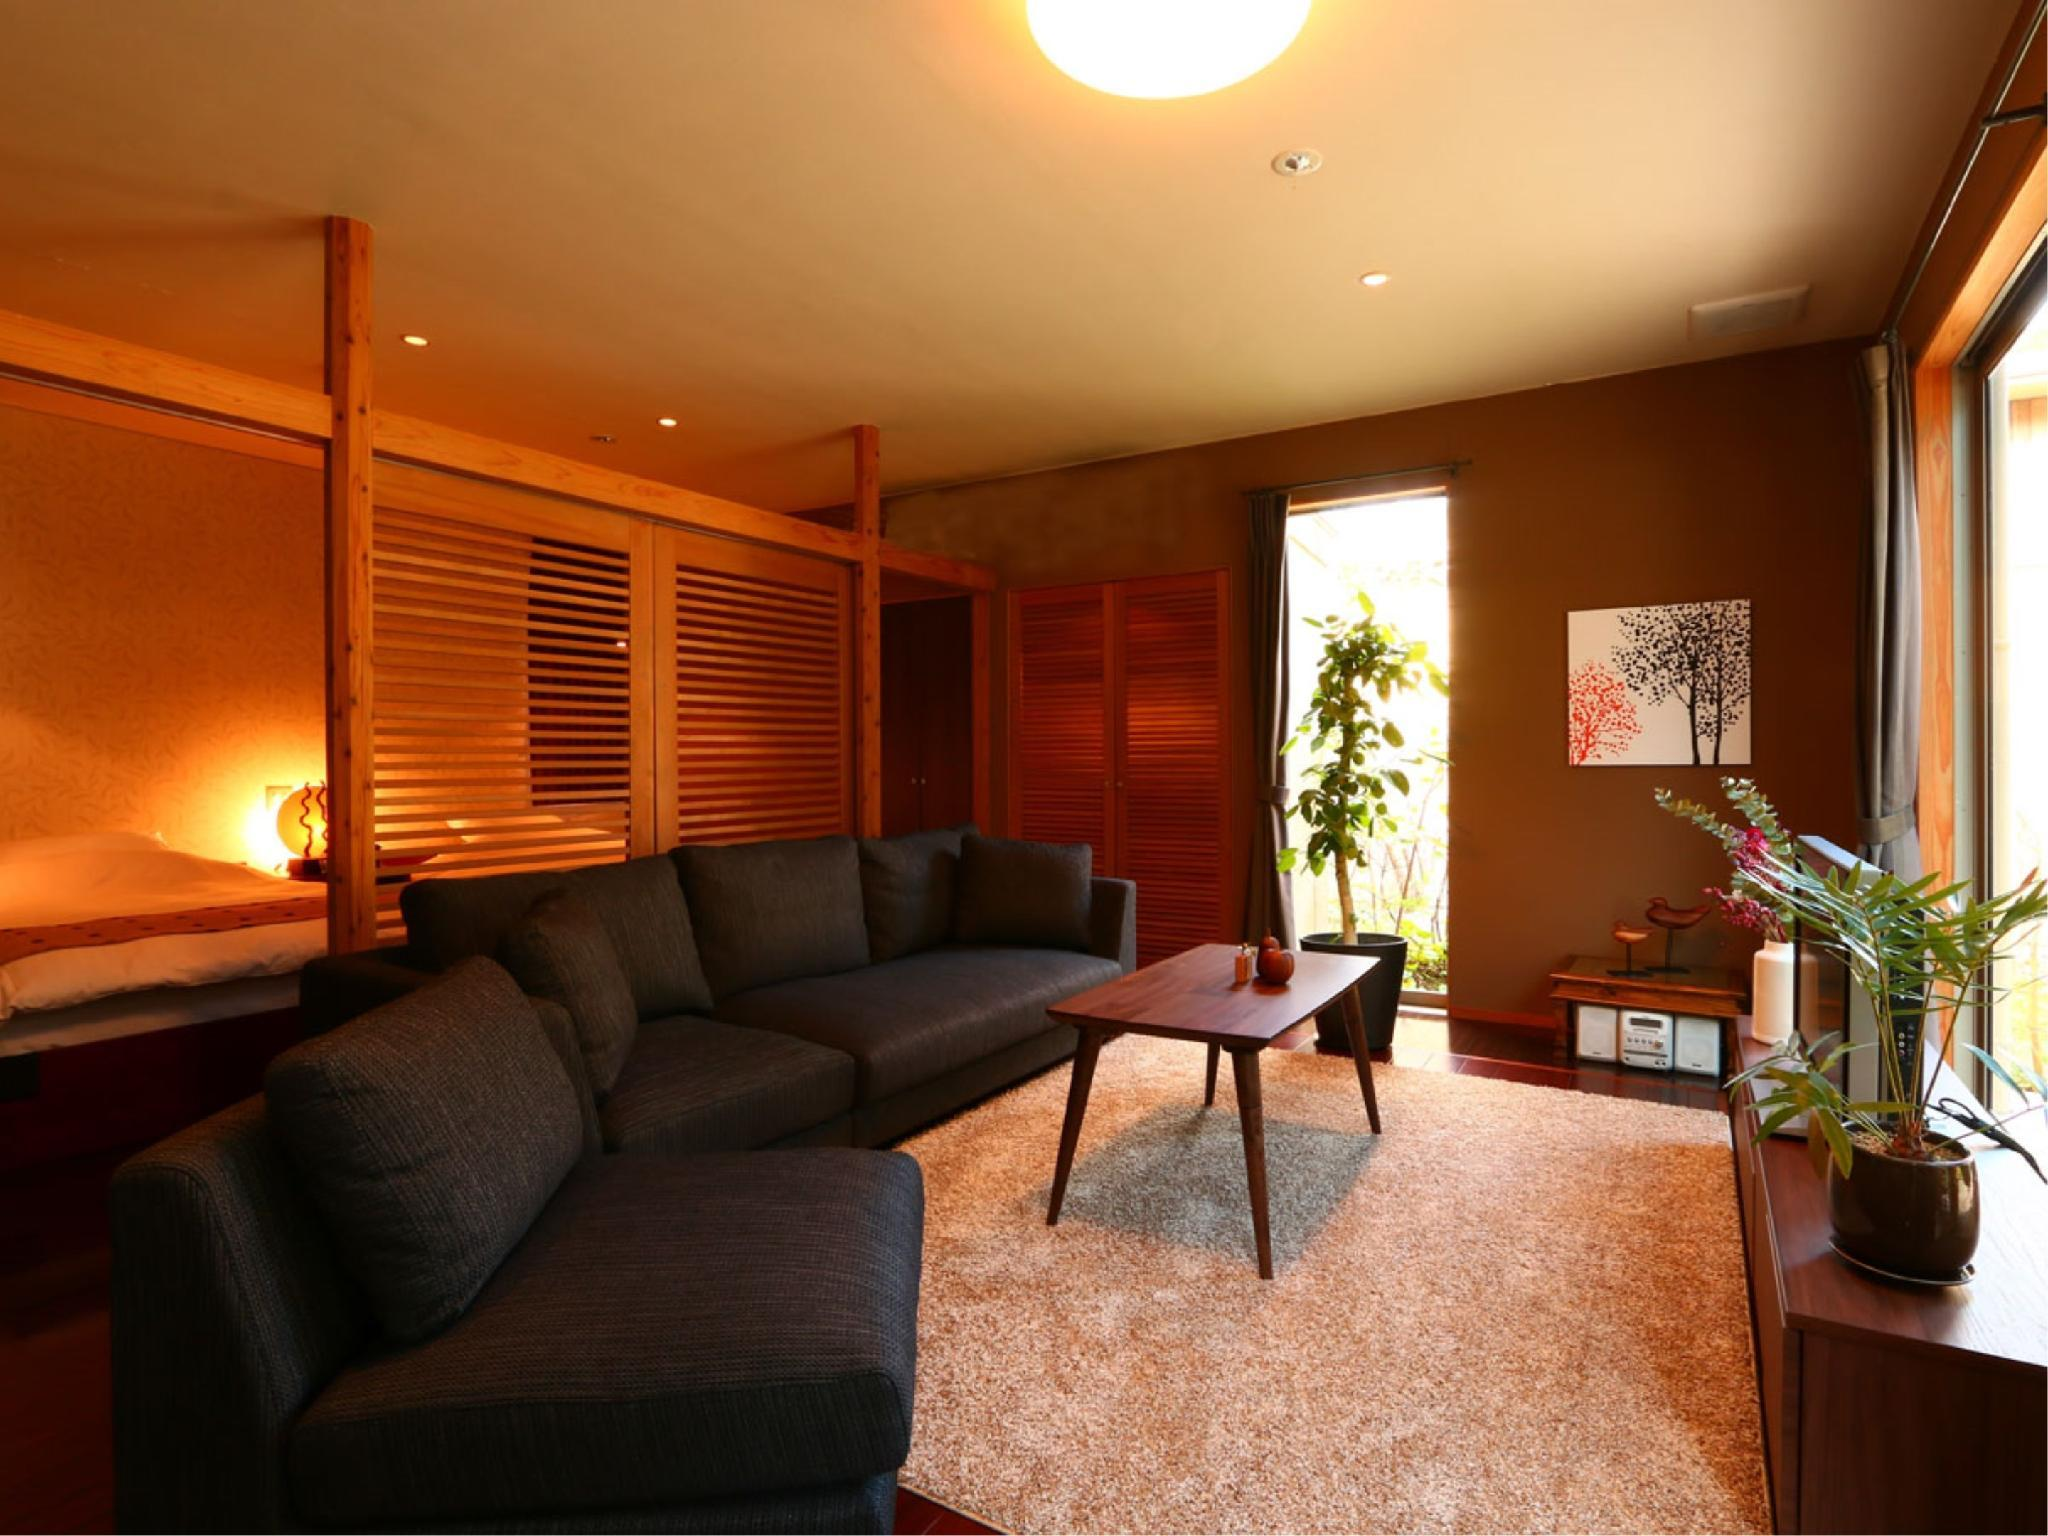 Detached Room with Terrace, Indoor Bath, Open-air Bath, Outer Garden, and Inner Garden (Yume Wing)